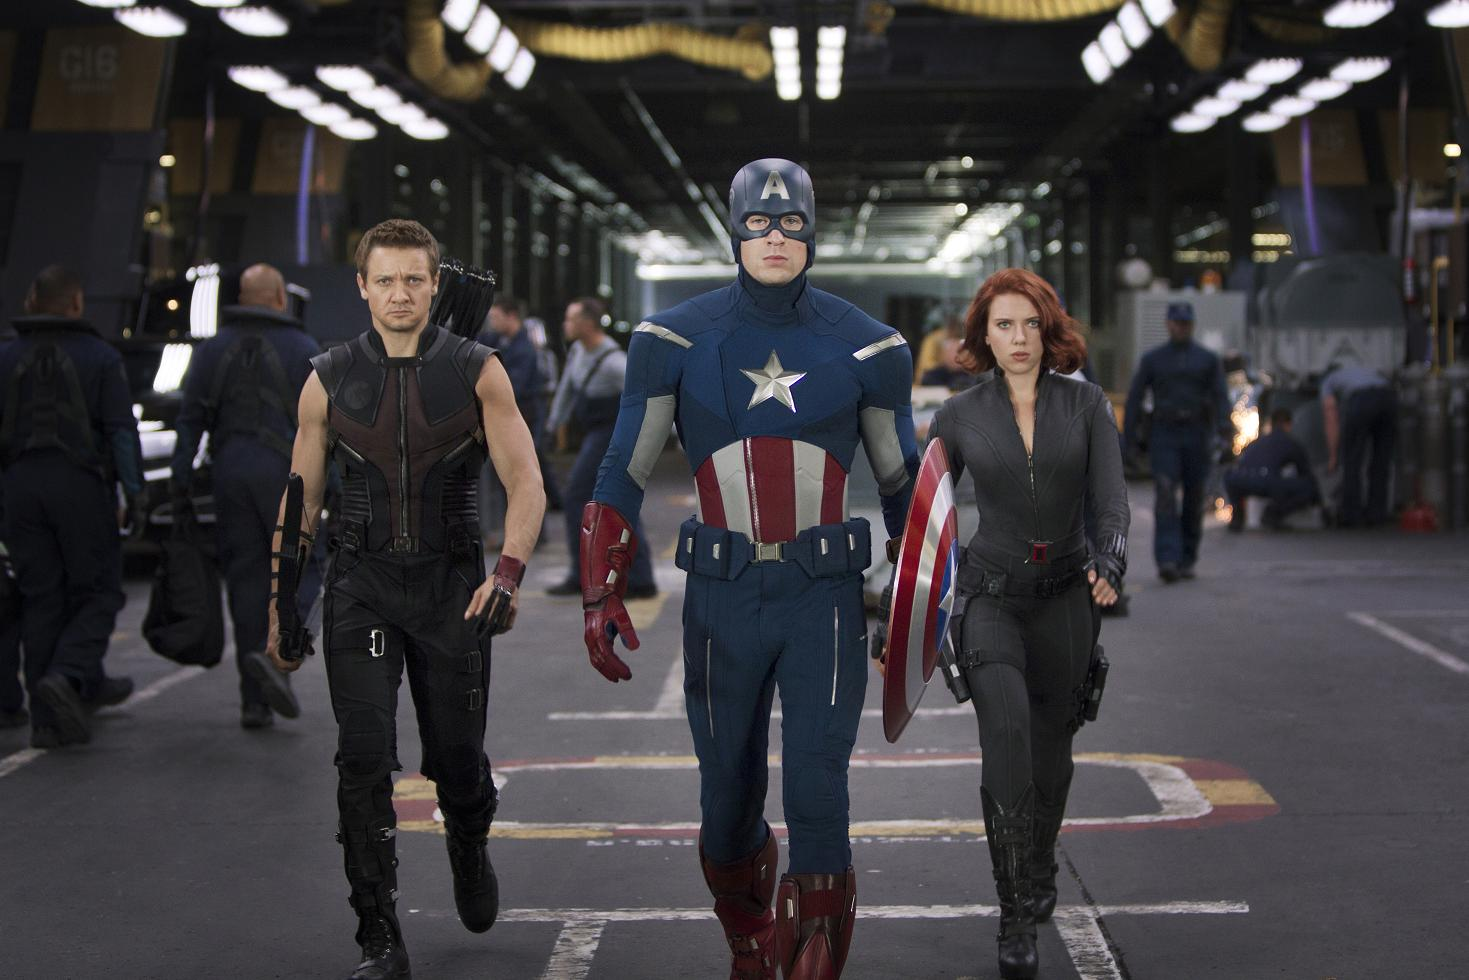 Hawkeye/Cpt America/ Black Widow